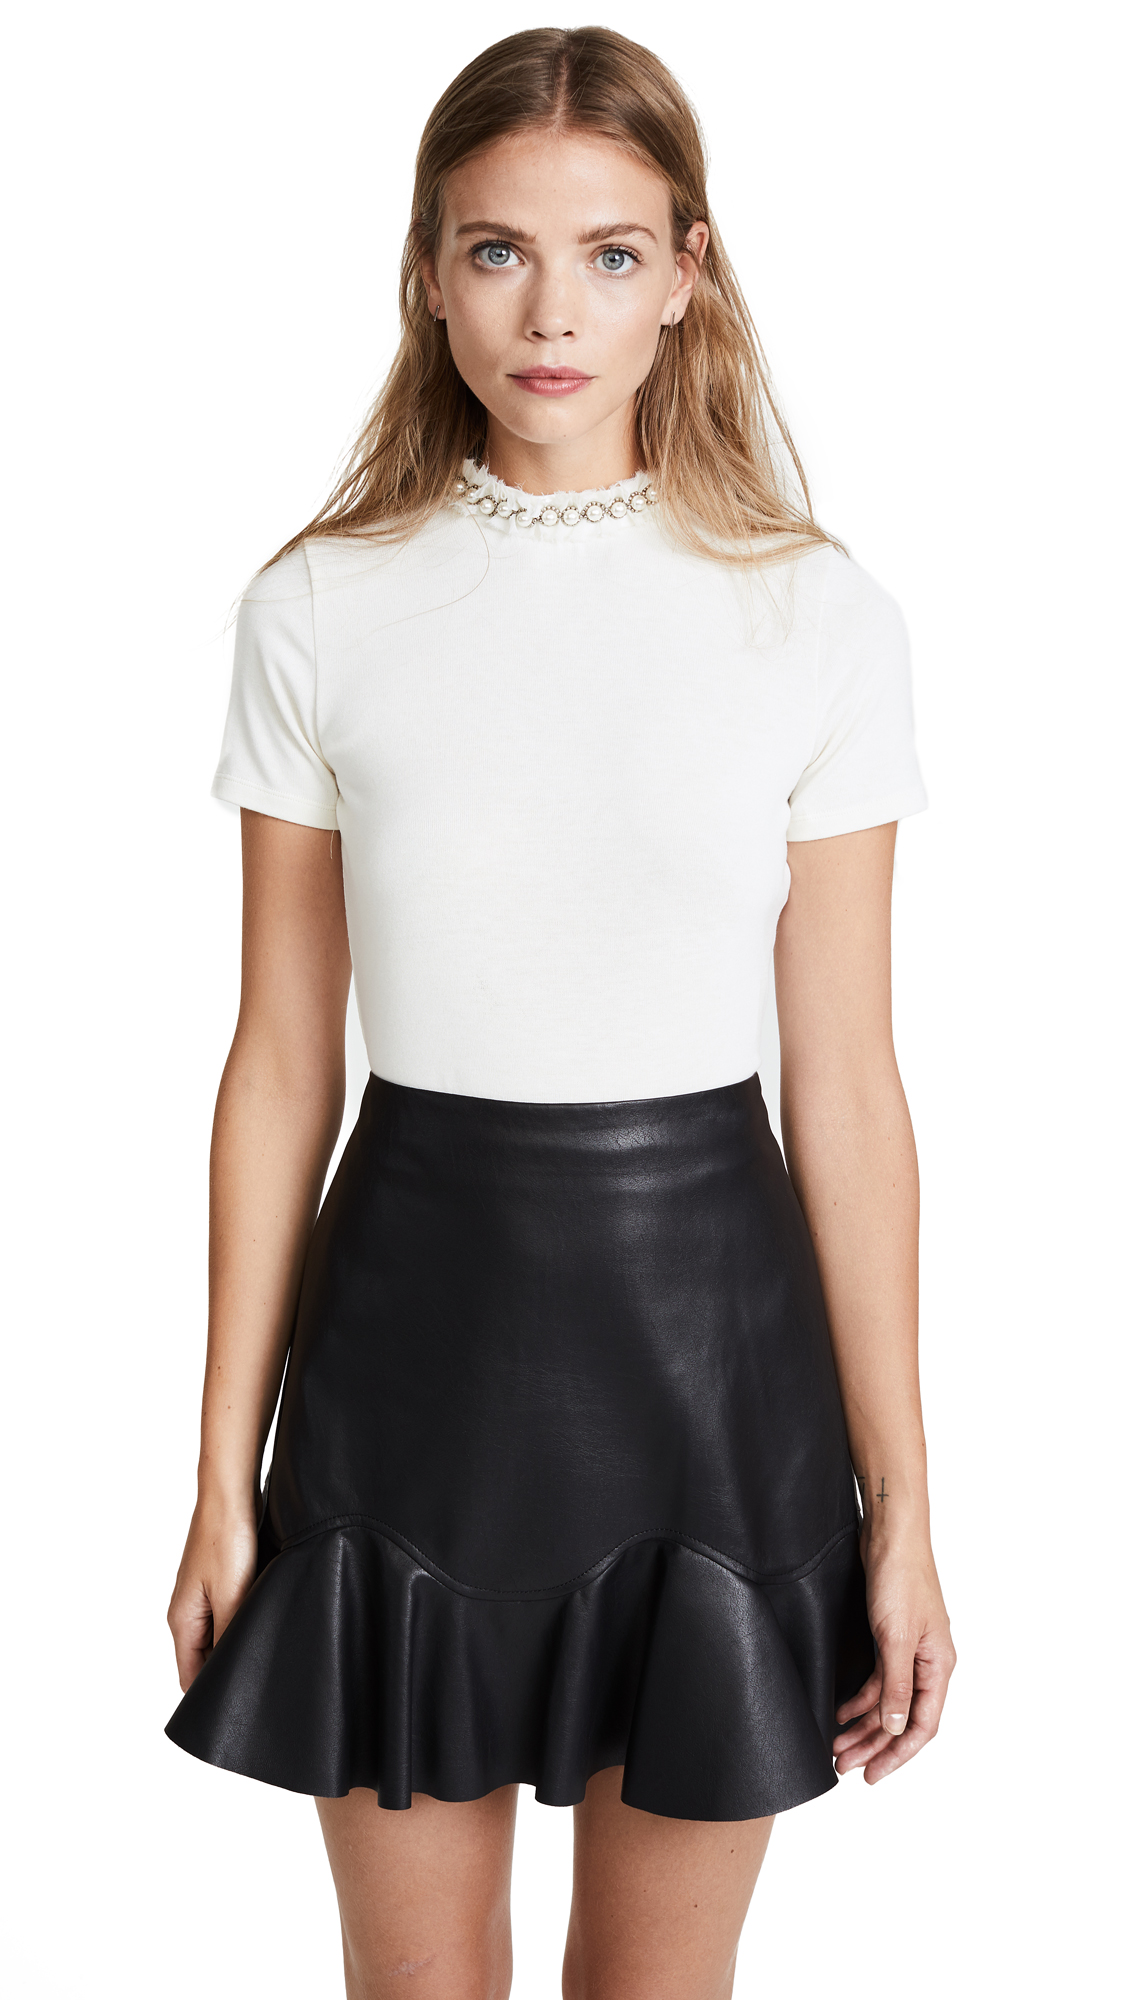 alice + olivia Jazime Crop Top - Cream